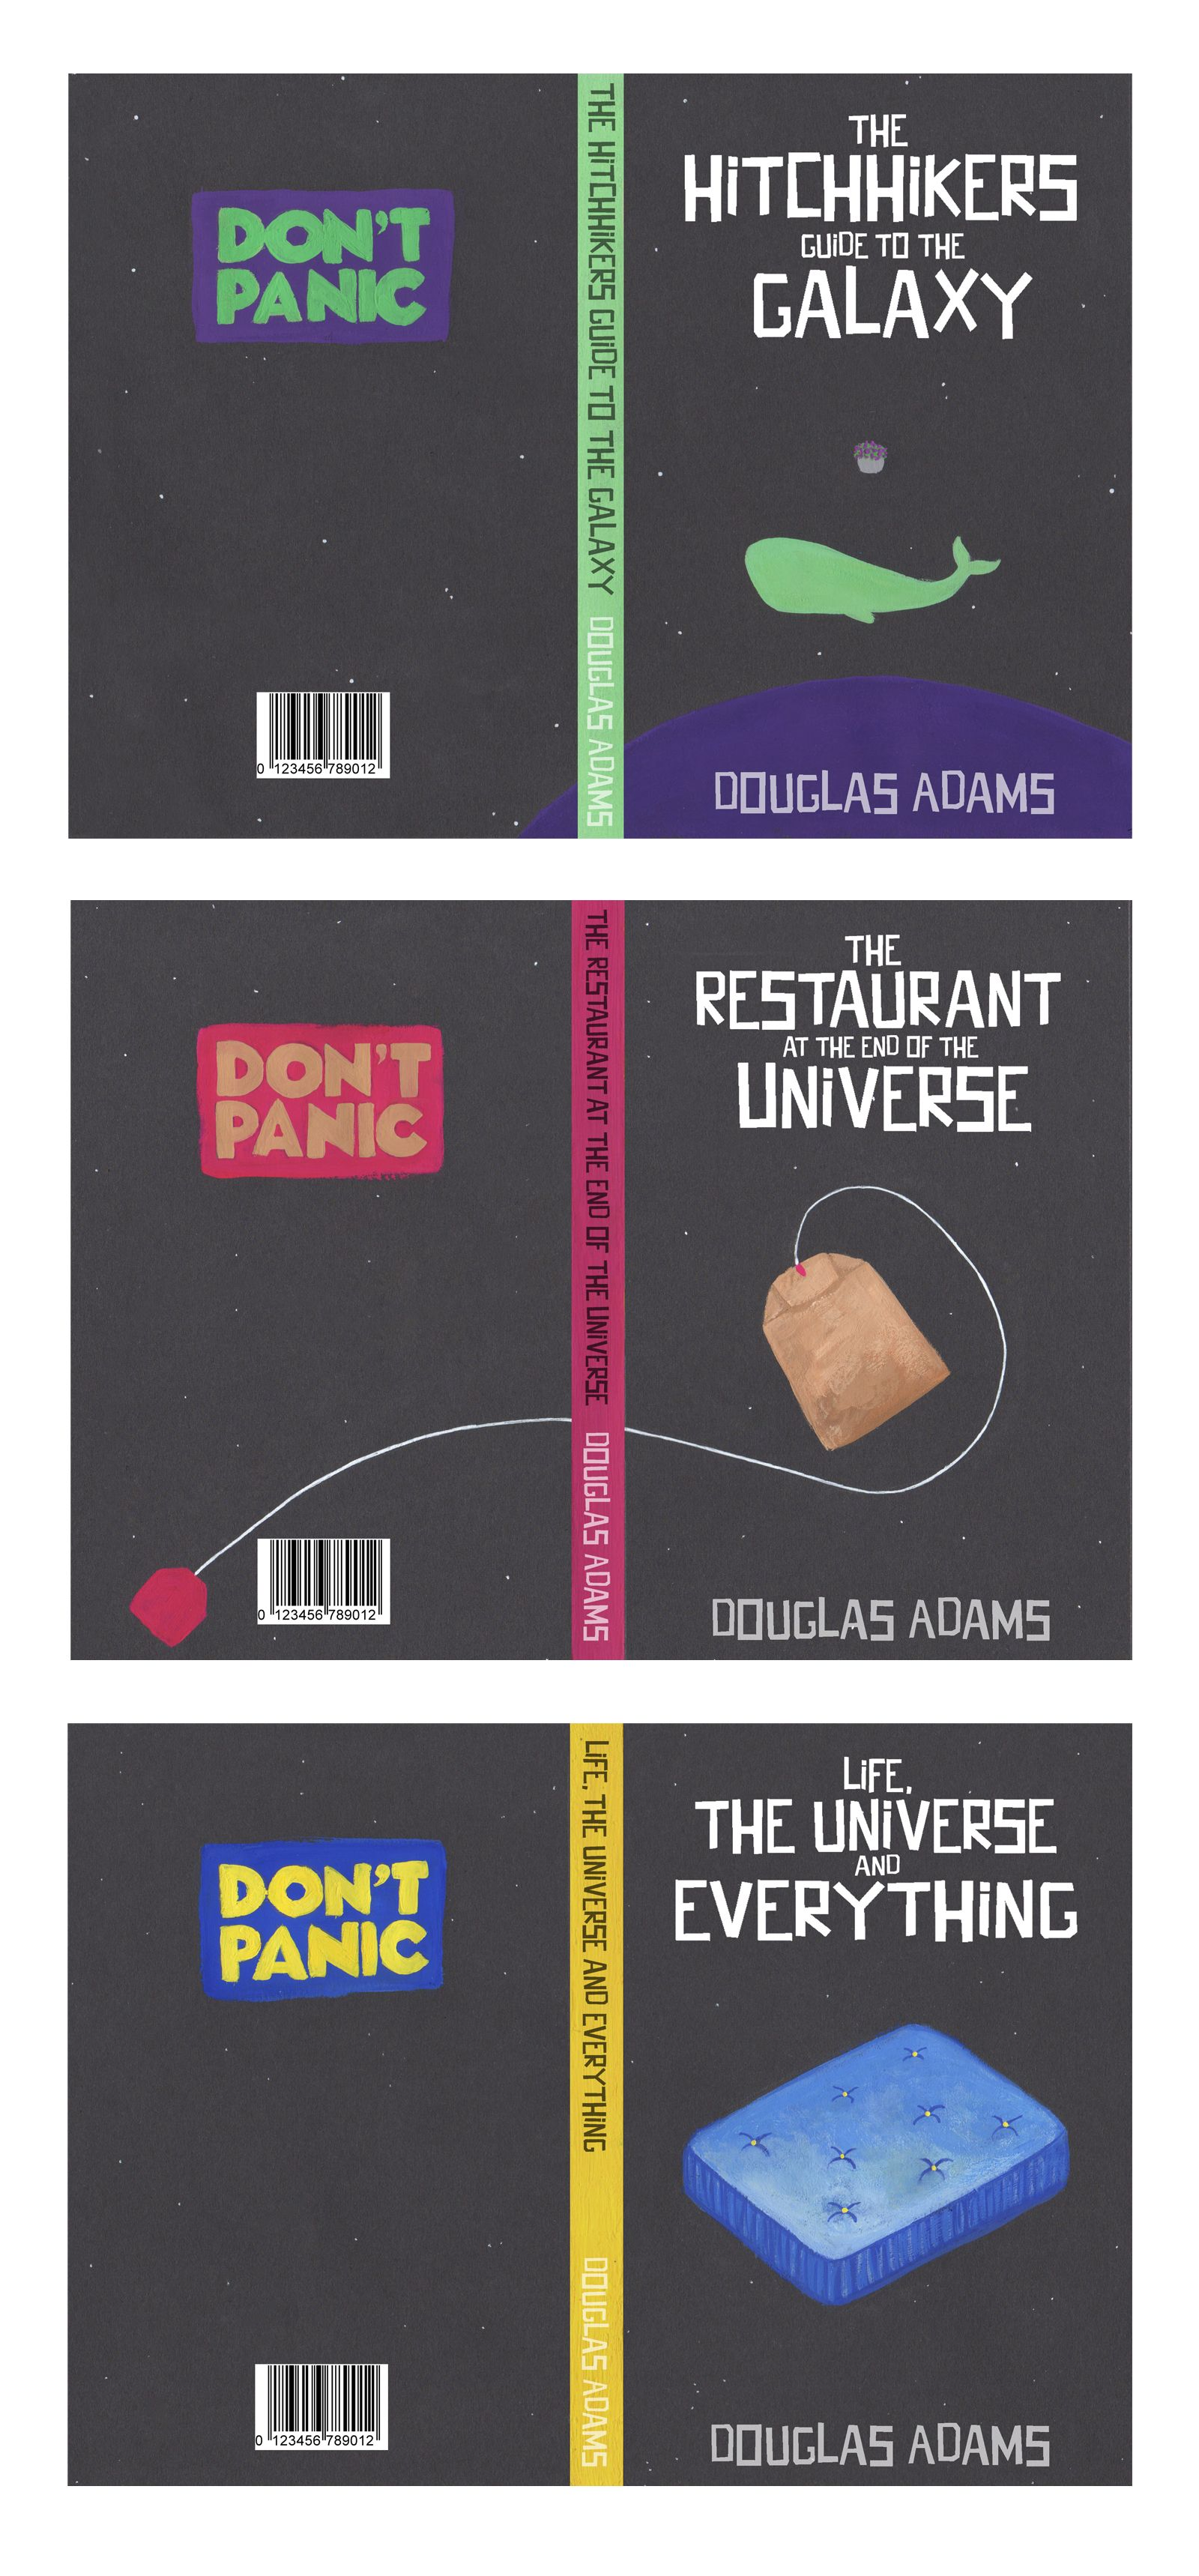 Speculative covers for Douglas Adams' Hitchhikers series. Aimed at a young adult audience.